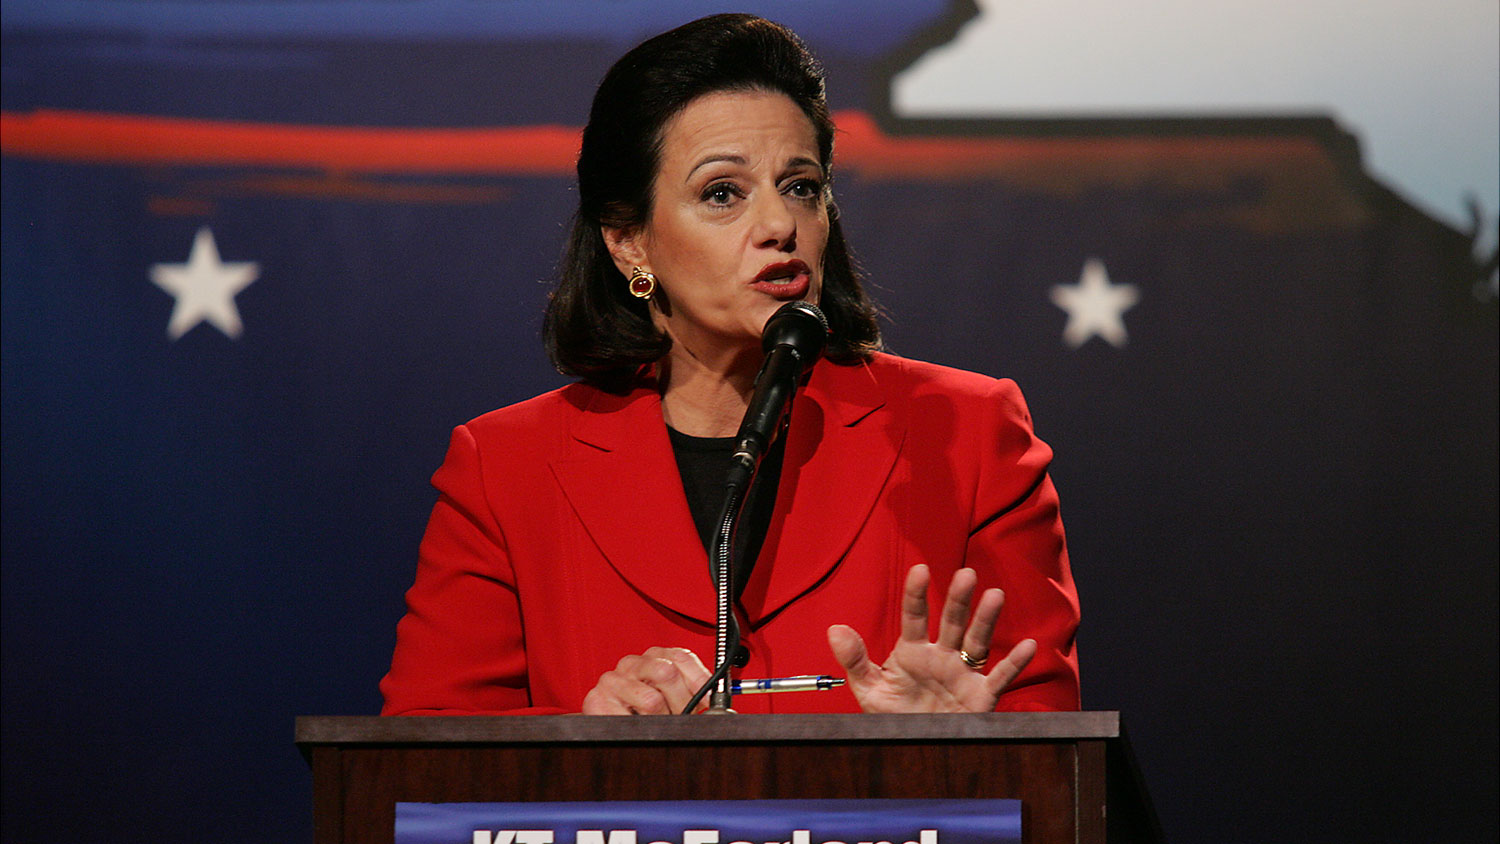 KT McFarland participates in a debate in New York on Aug. 9, 2006.